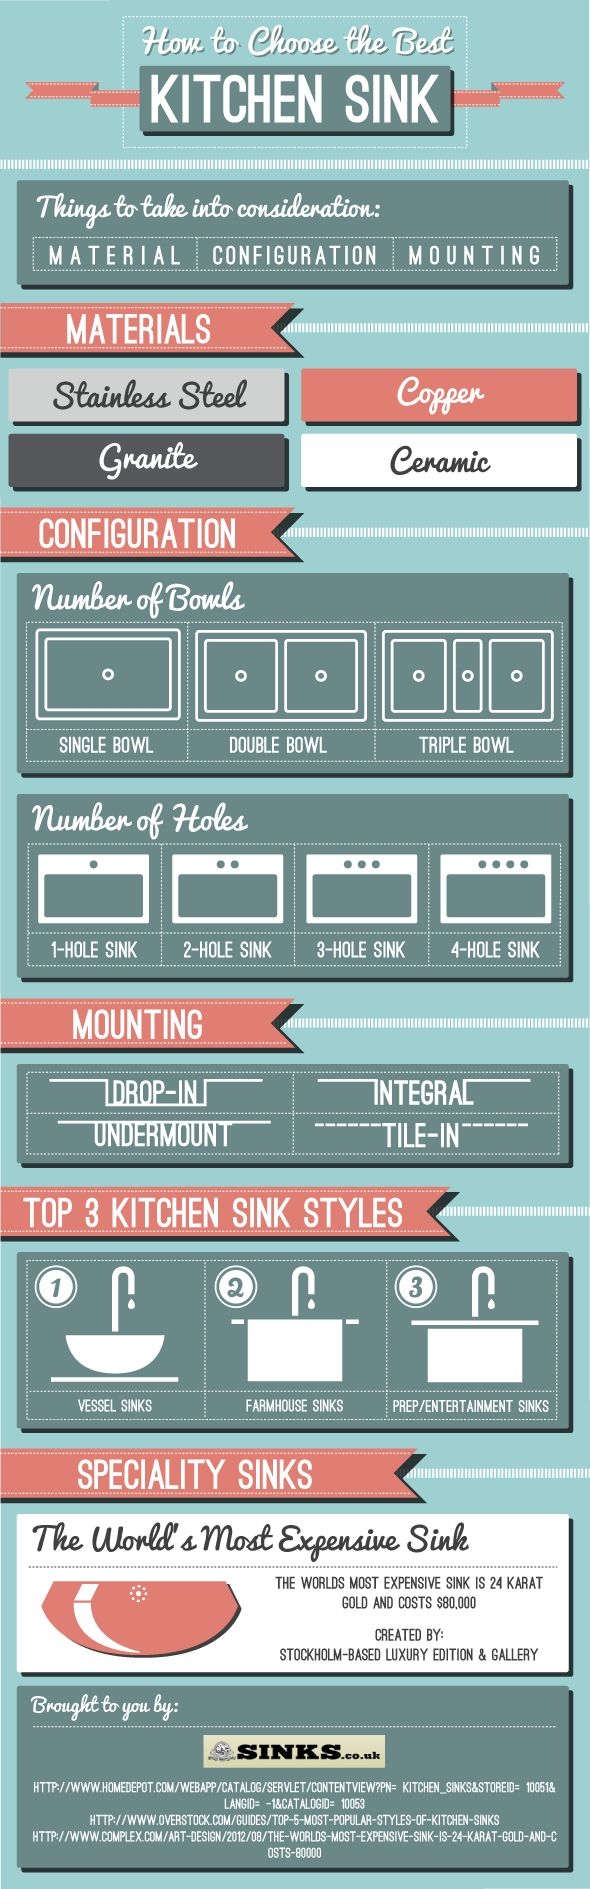 How to Choose the Best Kitchen Sink #INFOGRAPHIC #infografía